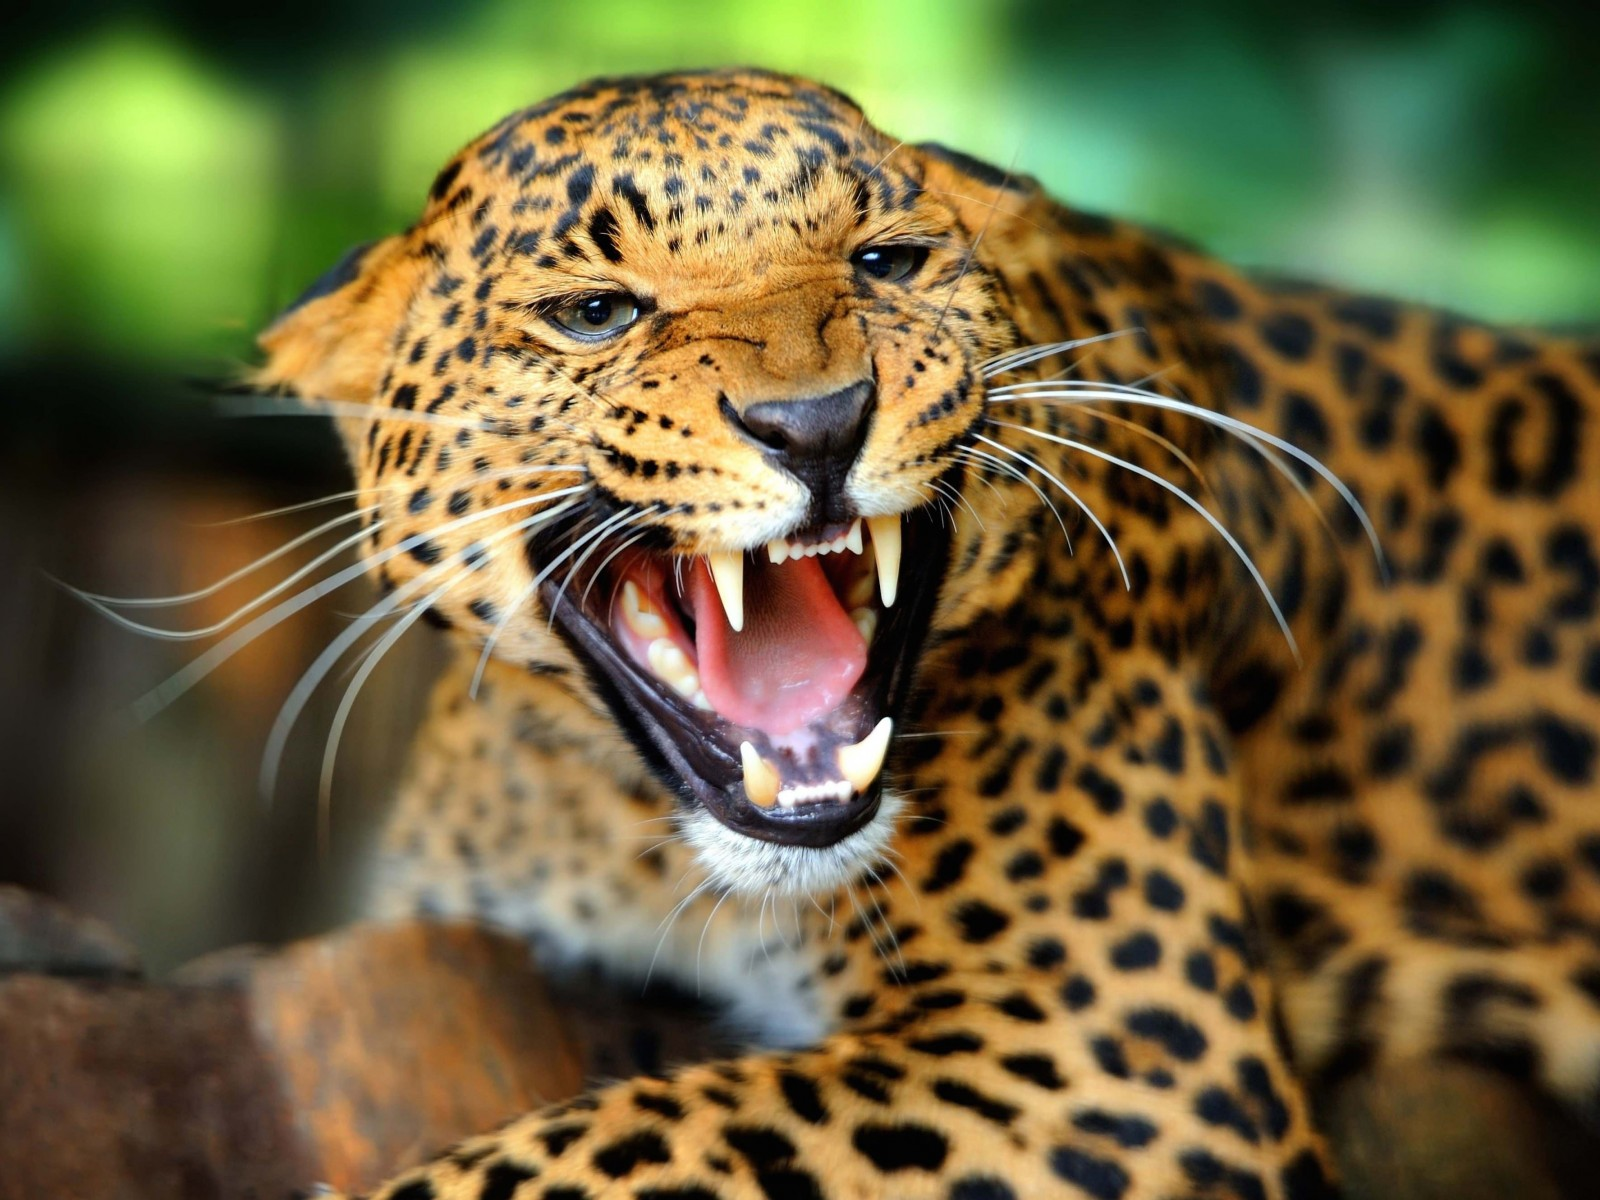 Growling Leopard Wallpaper for Desktop 1600x1200